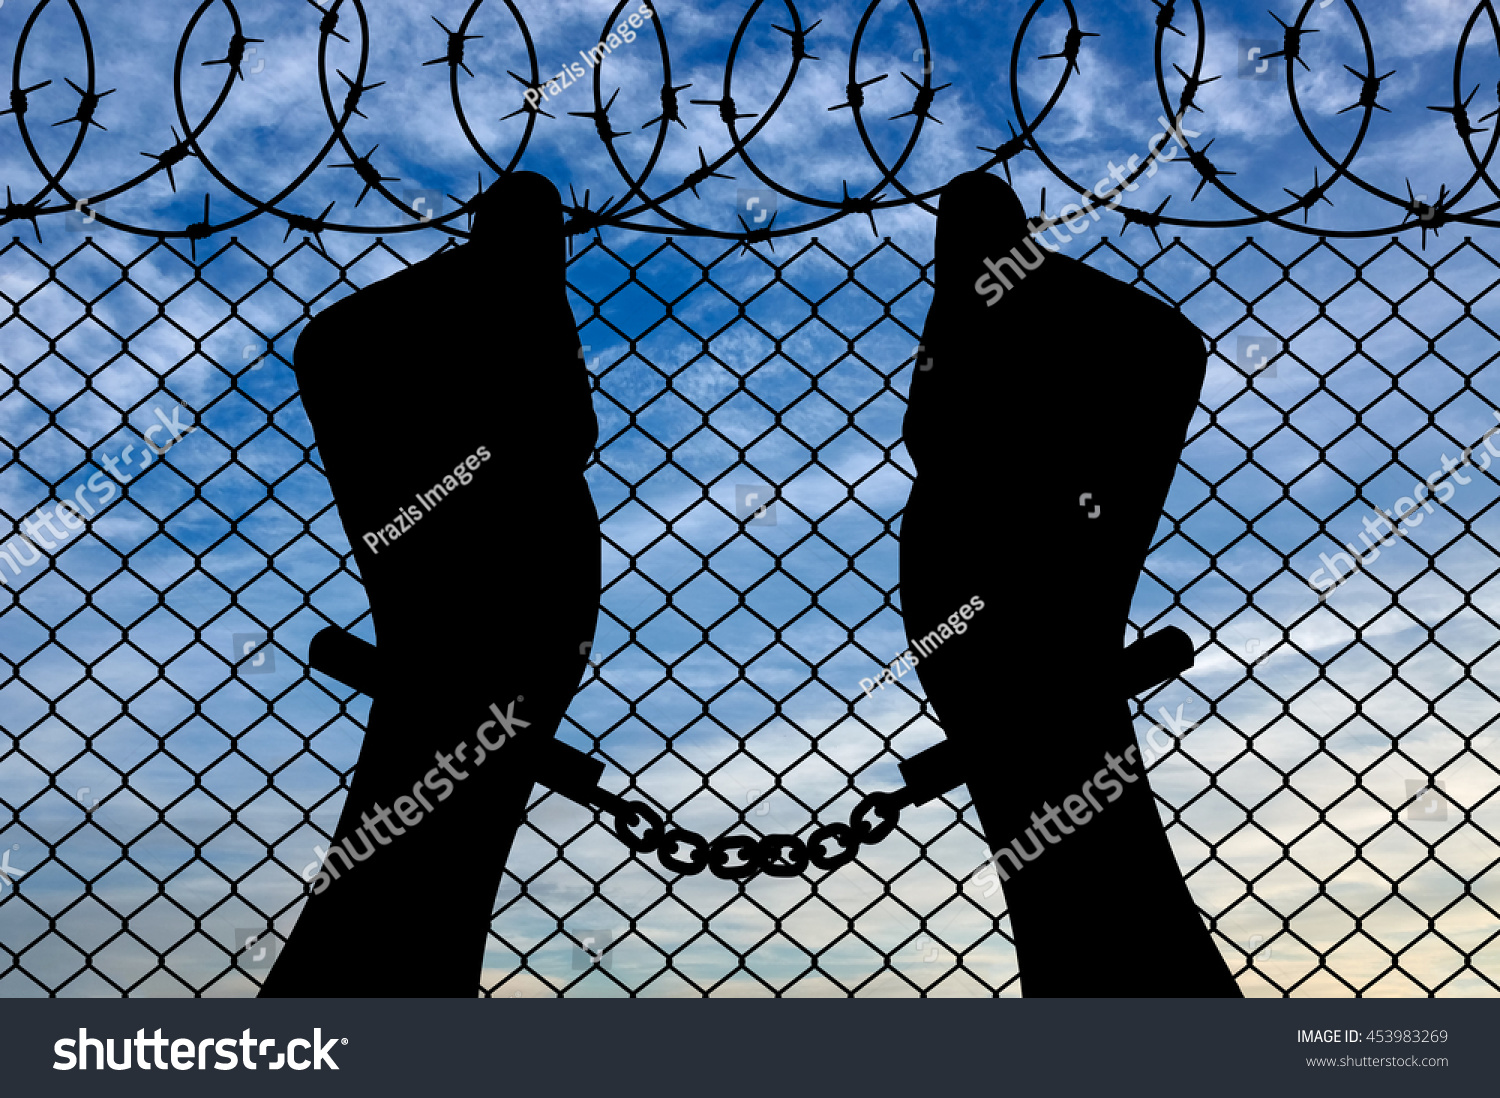 Freedom Concept Silhouette Human Hands Handcuffs Stock Photo (Edit ...